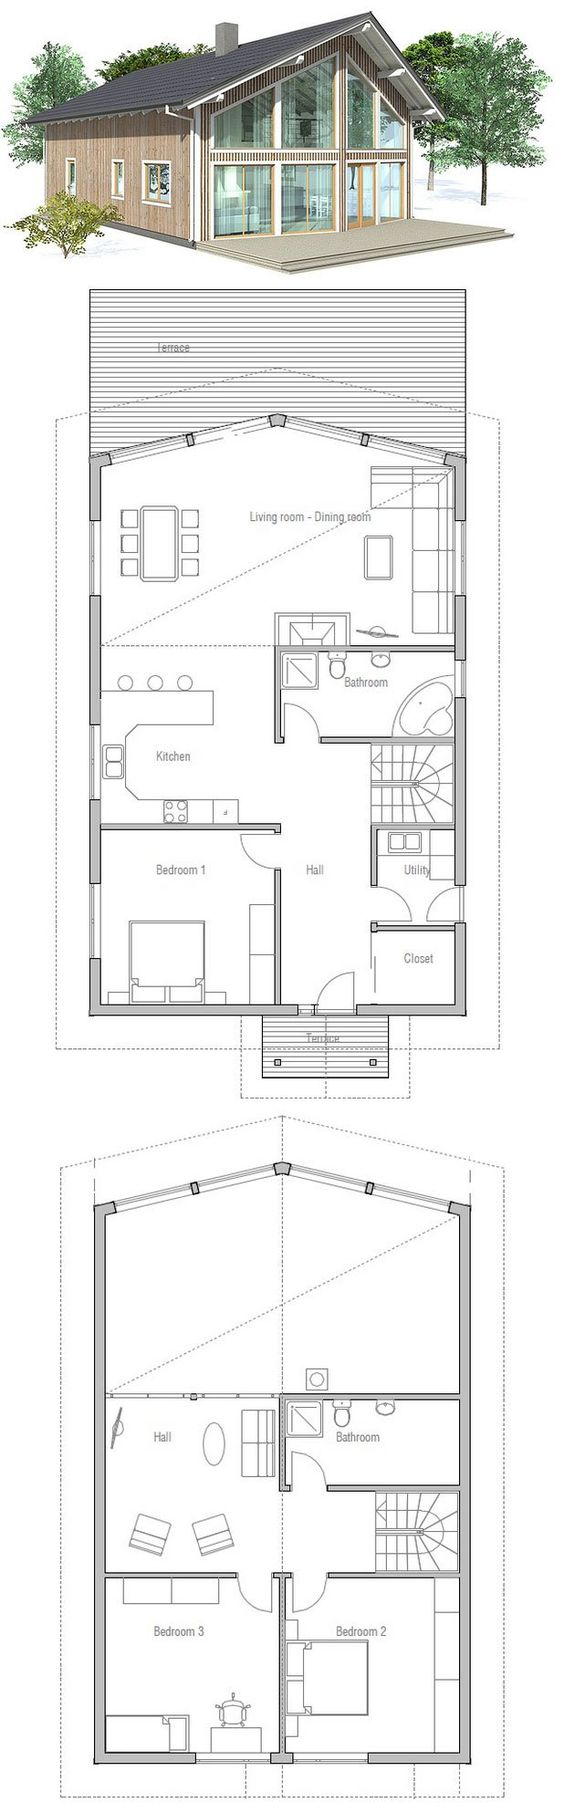 House Plans With Vaulted Ceilings 28 Images Small